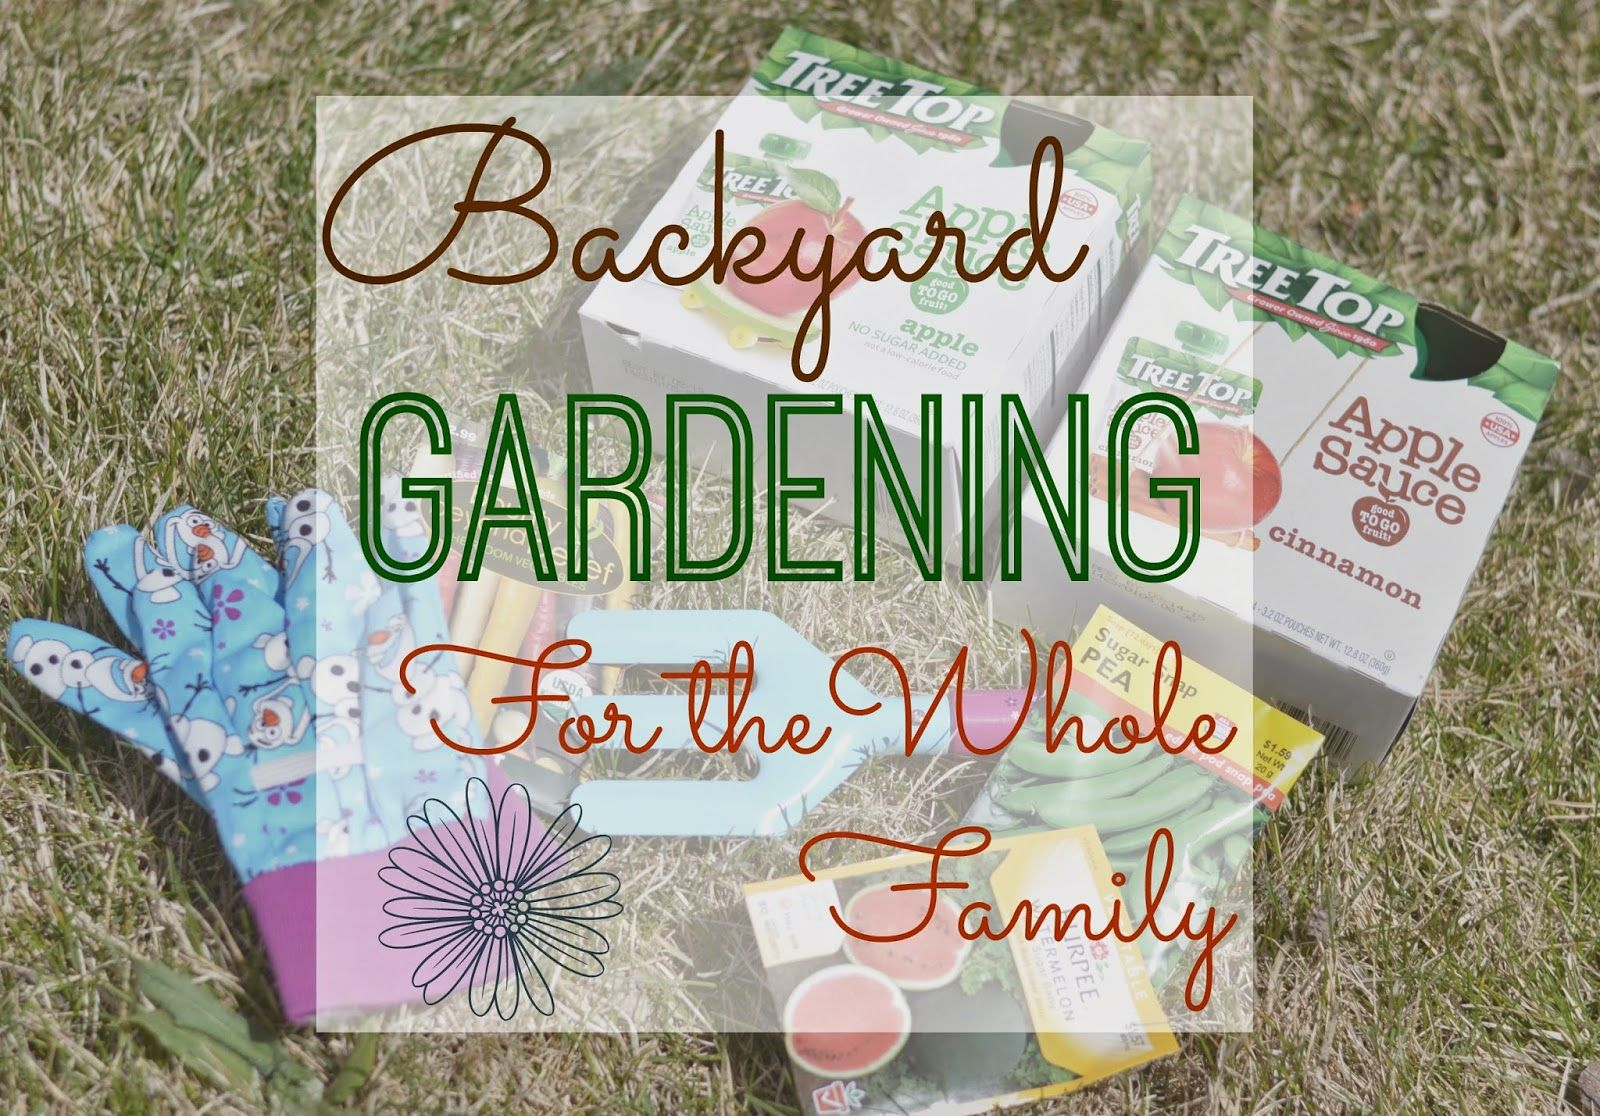 Backyard Gardening For The Whole Family.  Montessori Gardening Tips.  Gardening with kids.  Family Garden.  #RaisingGoodApples AD http://bit.ly/1CP6h1m